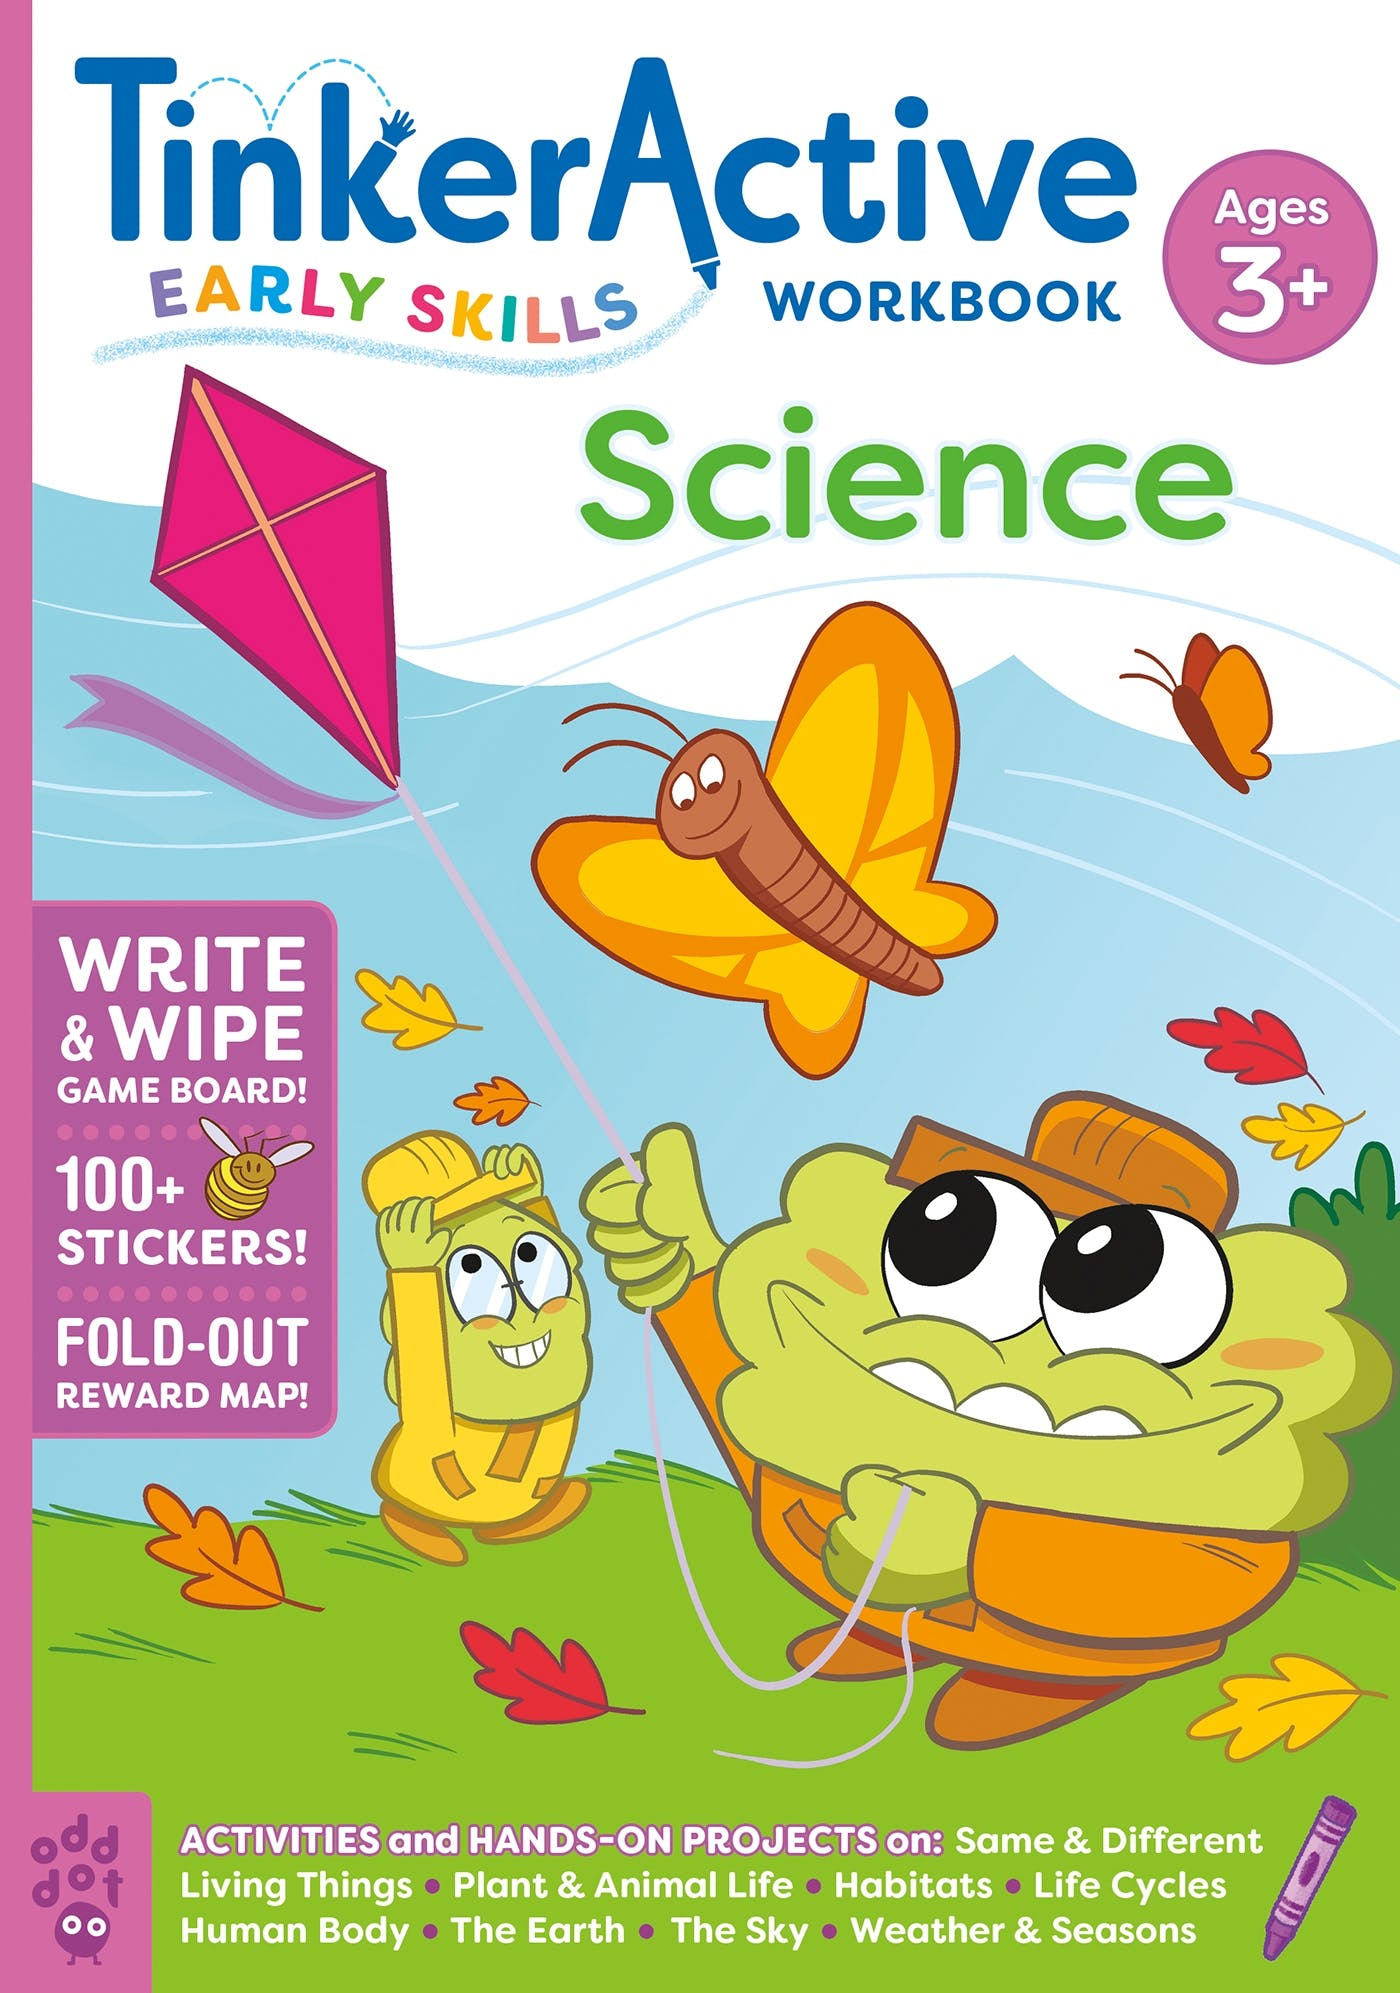 Image of TinkerActive Early Skills Science Workbook Ages 3+